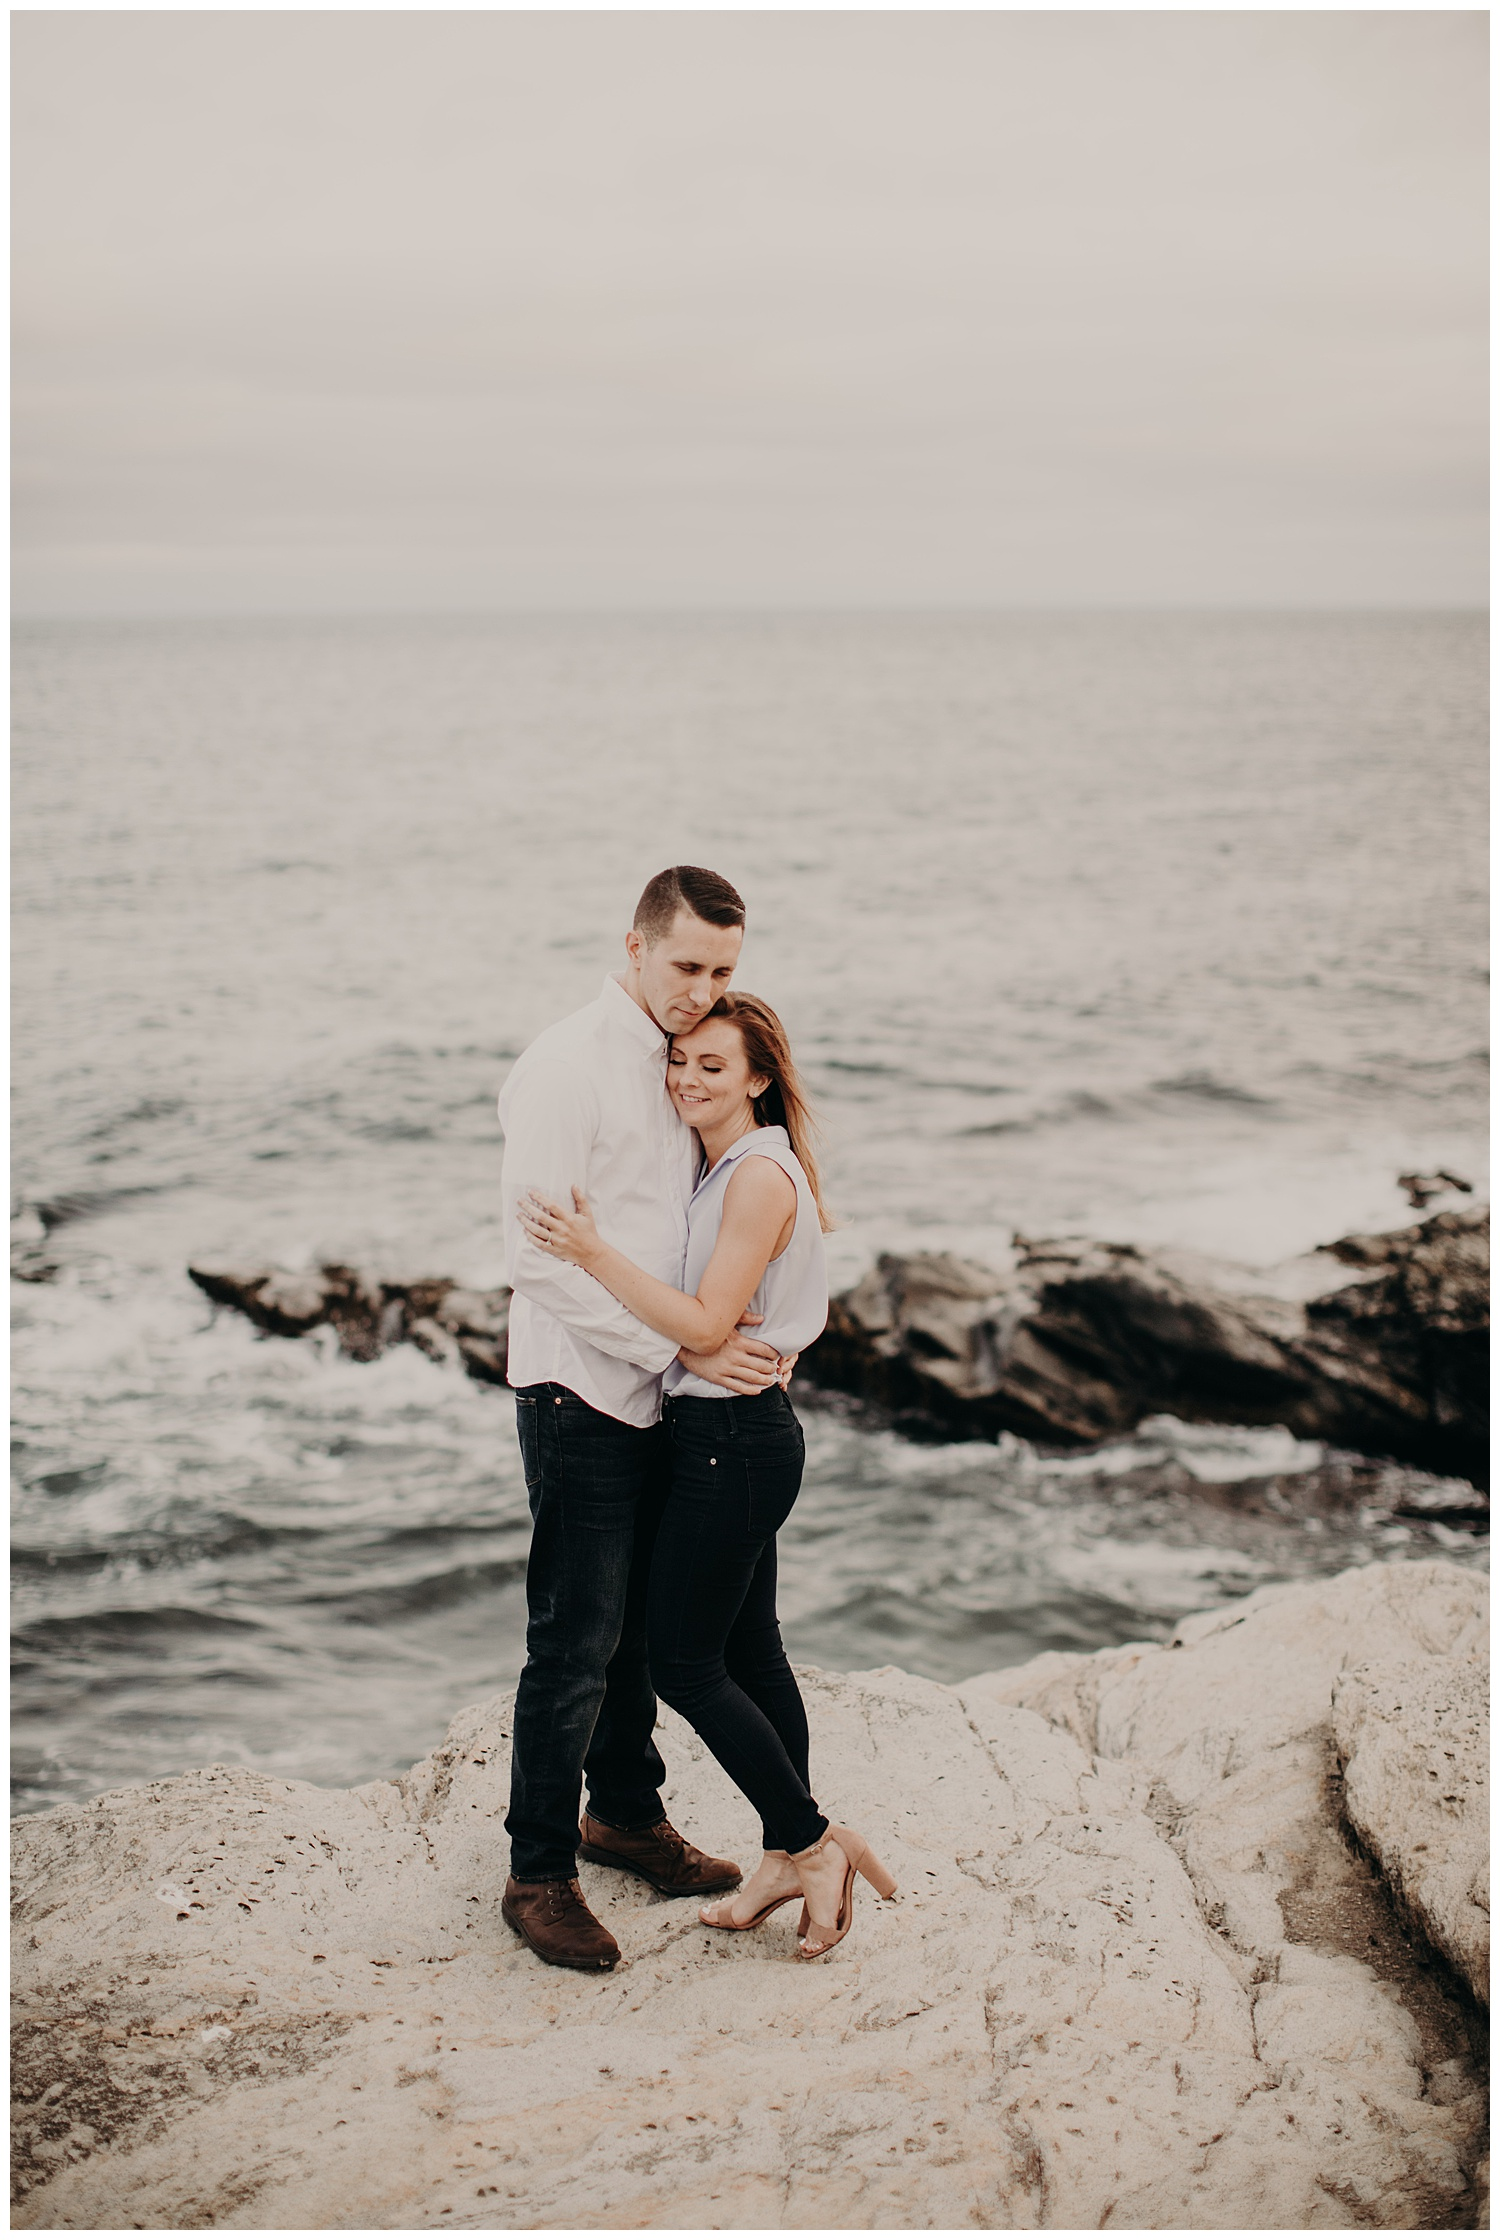 Dan_Sunni_Beavertail_Point_Engagement_Session_009.jpeg